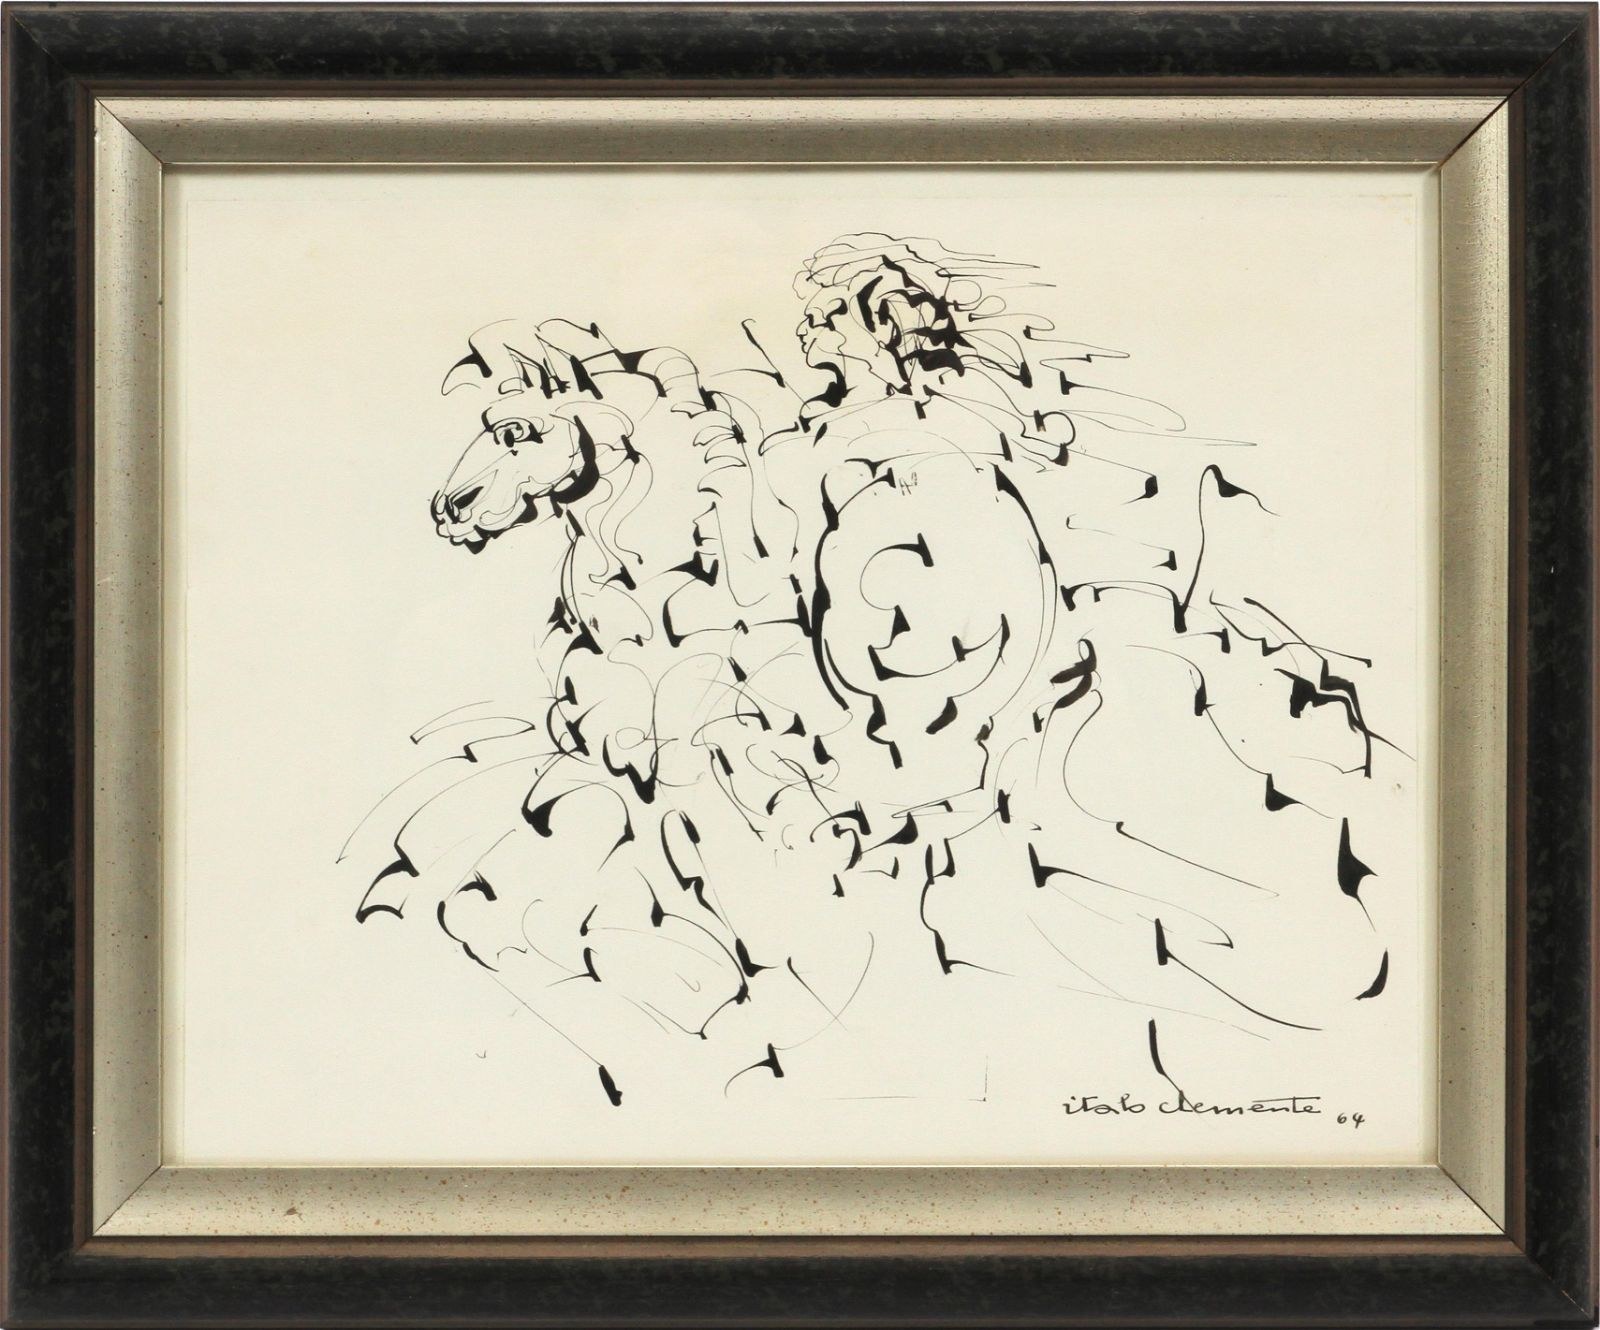 ITALO CLEMENTE (NEW YORK/ITALY 1930-2010) INK DRAWING